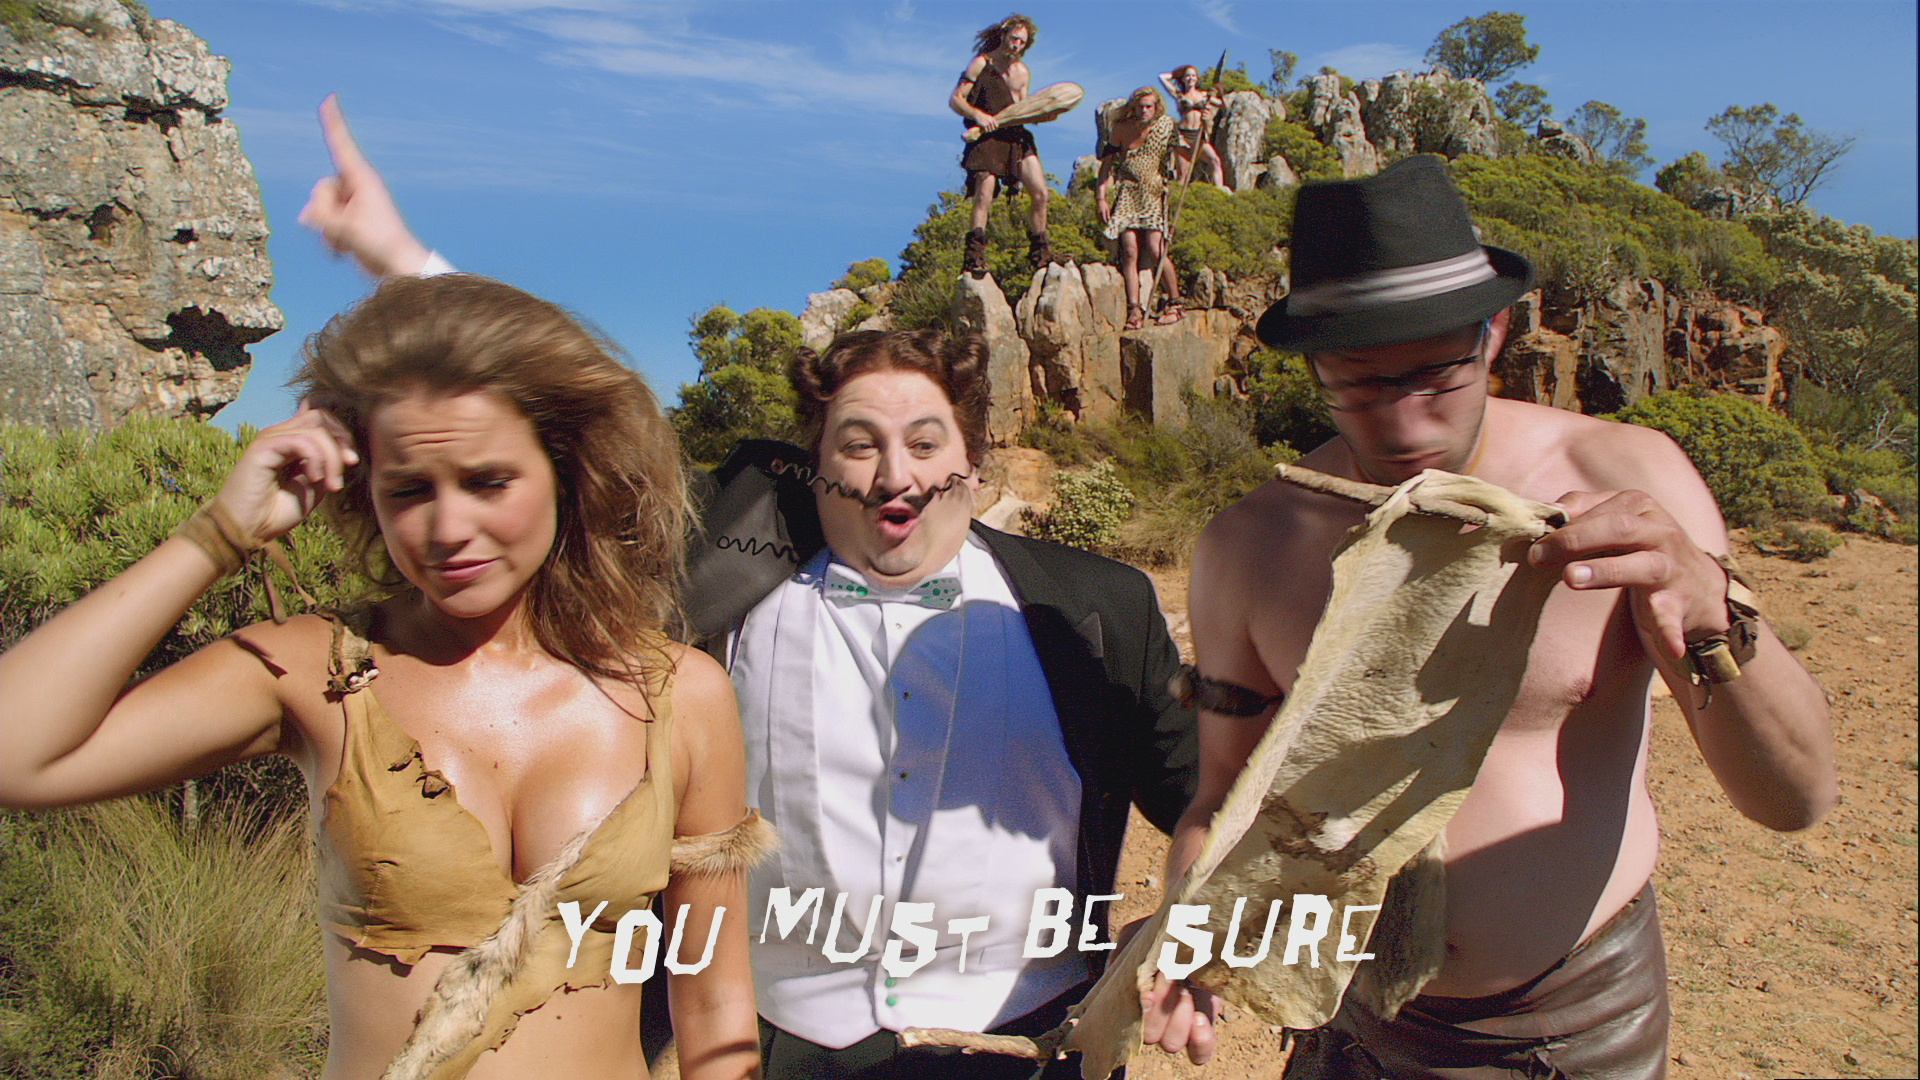 Behind the scenes of Gocompare's TV ad campaign